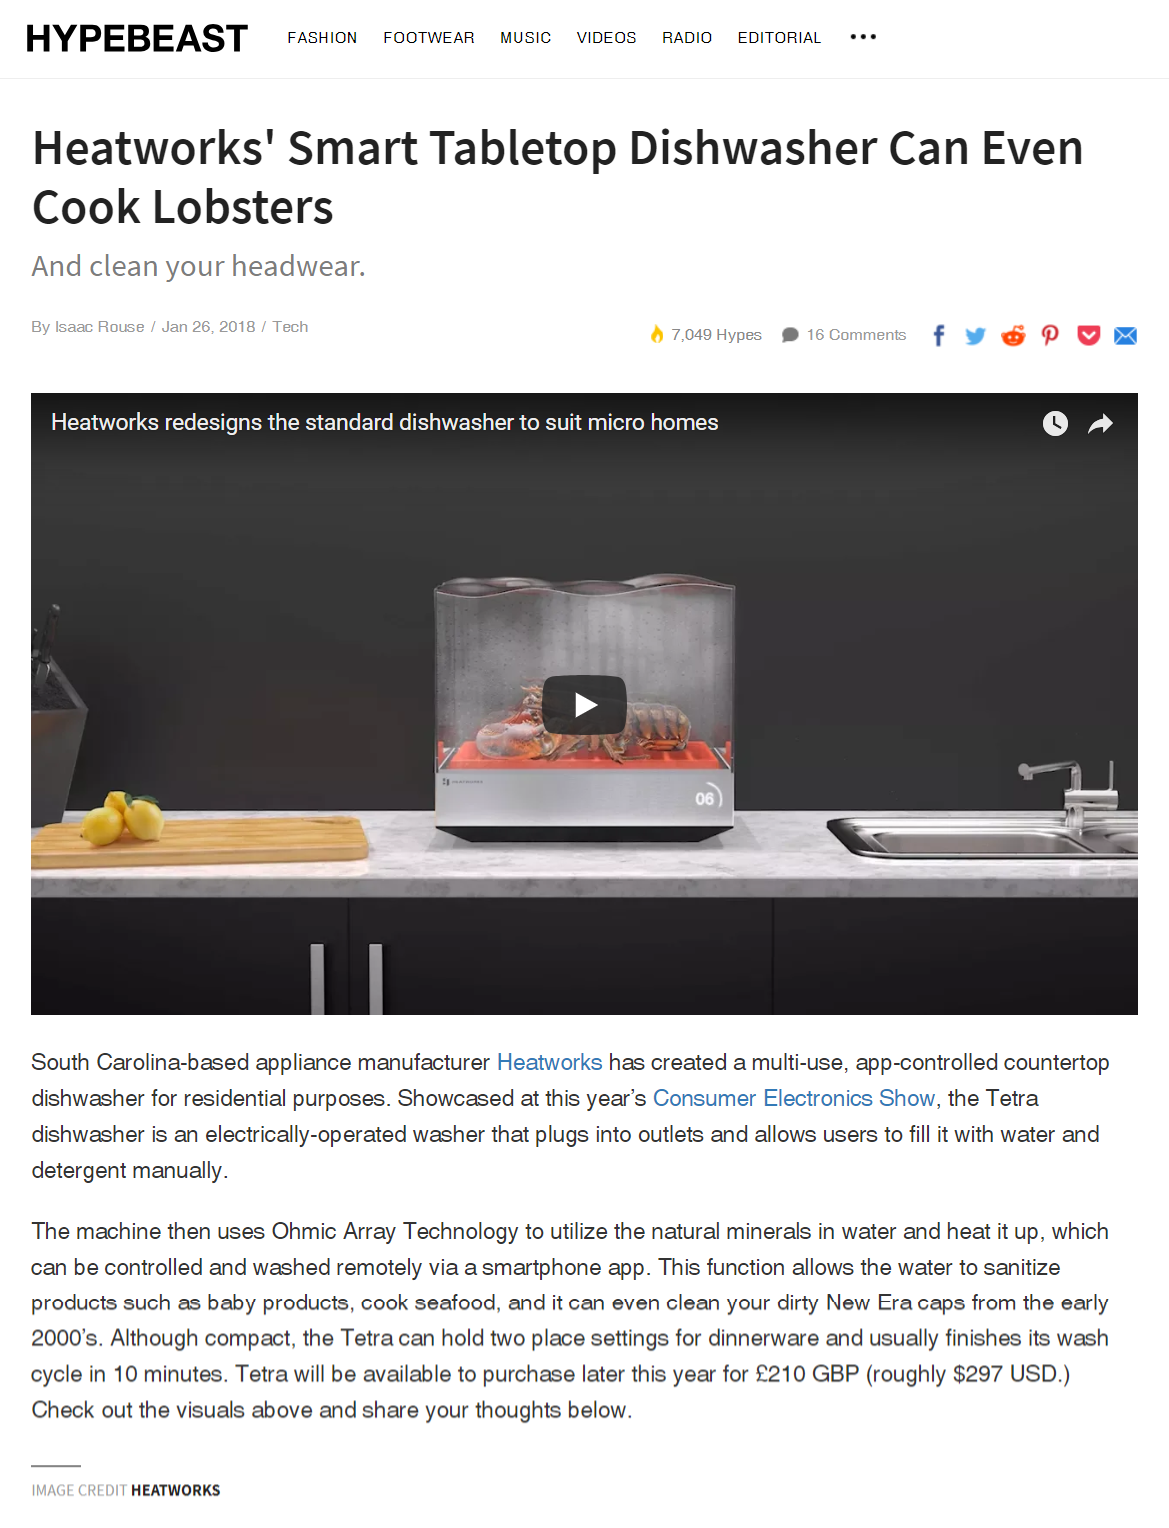 screencapture-hypebeast-2018-1-heatworks-smart-tabletop-dishwasher-tetra-2018-05-30-17_48_07.png